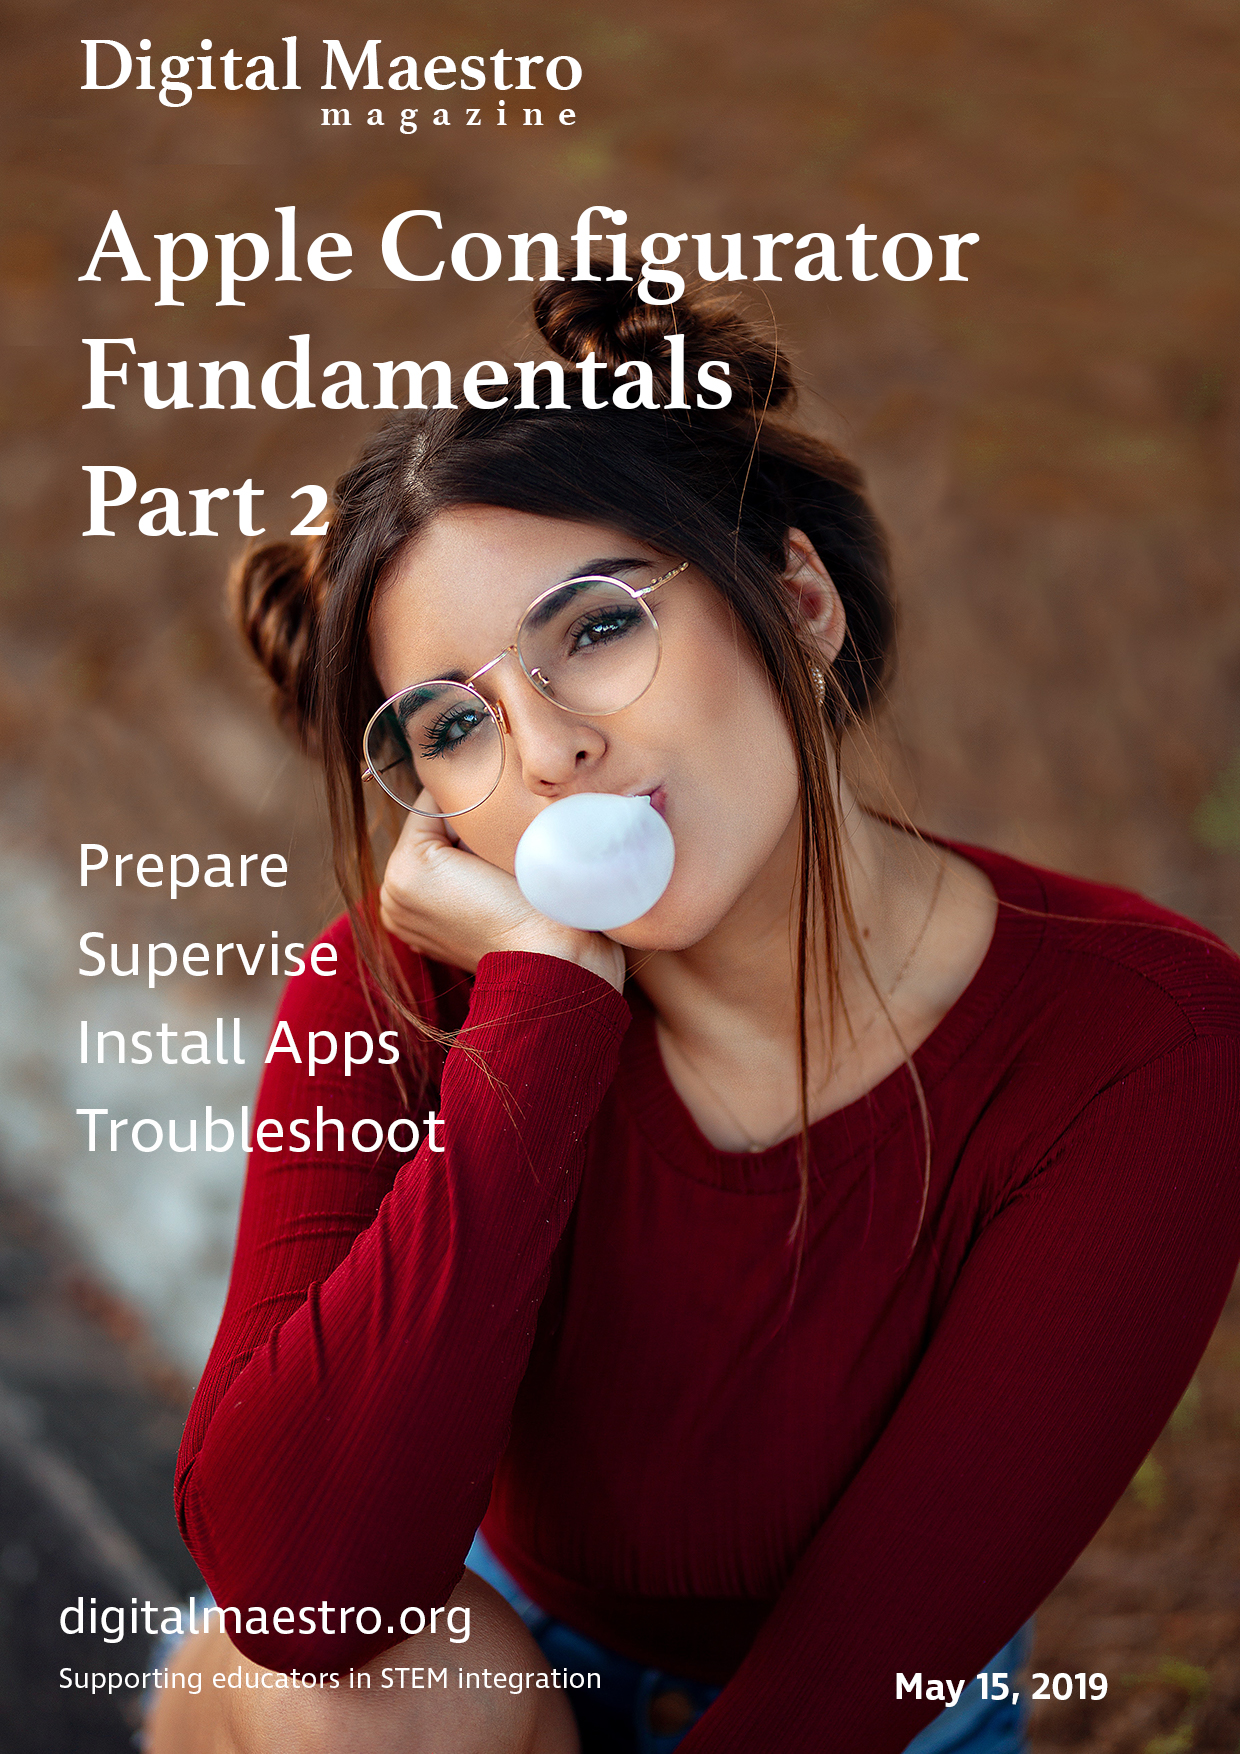 Apple Configurator Fundamentals Part 2 - Prepare Supervise Distribute Apps